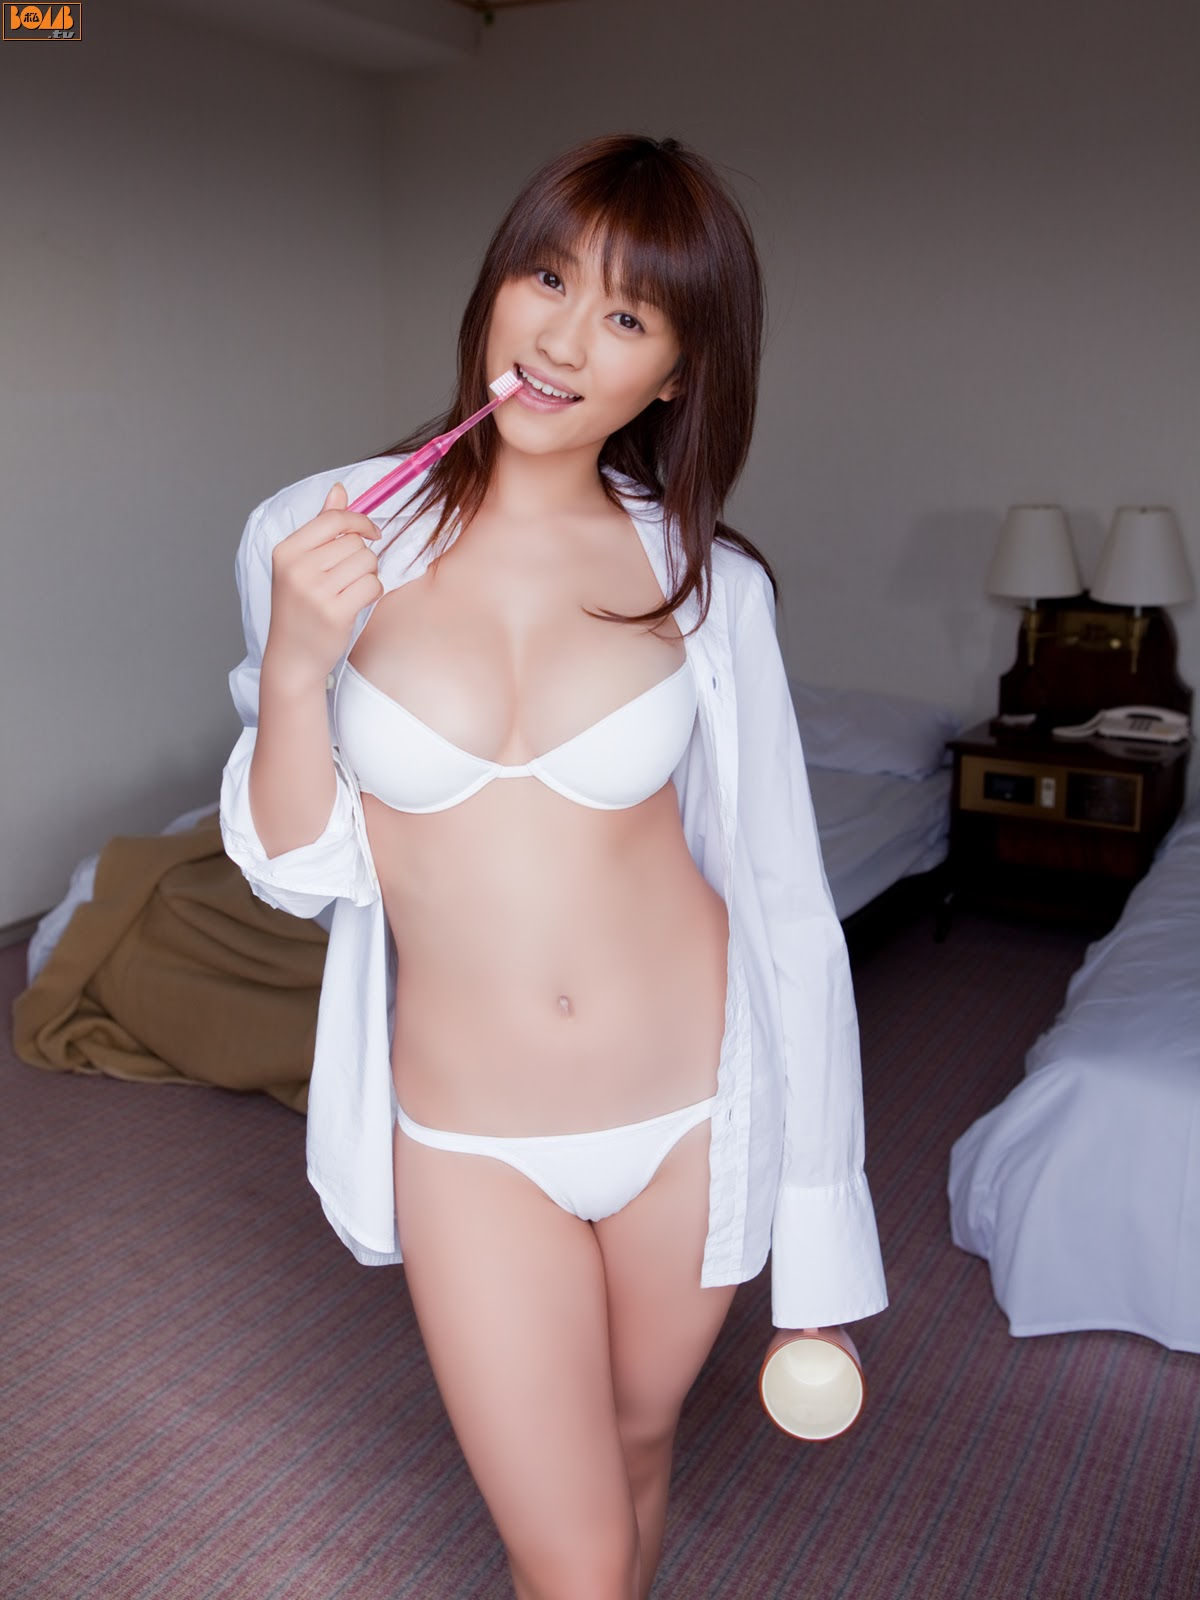 All kinds of redweathered skin sweaty skin smiles in the morning light Mikie Hara010